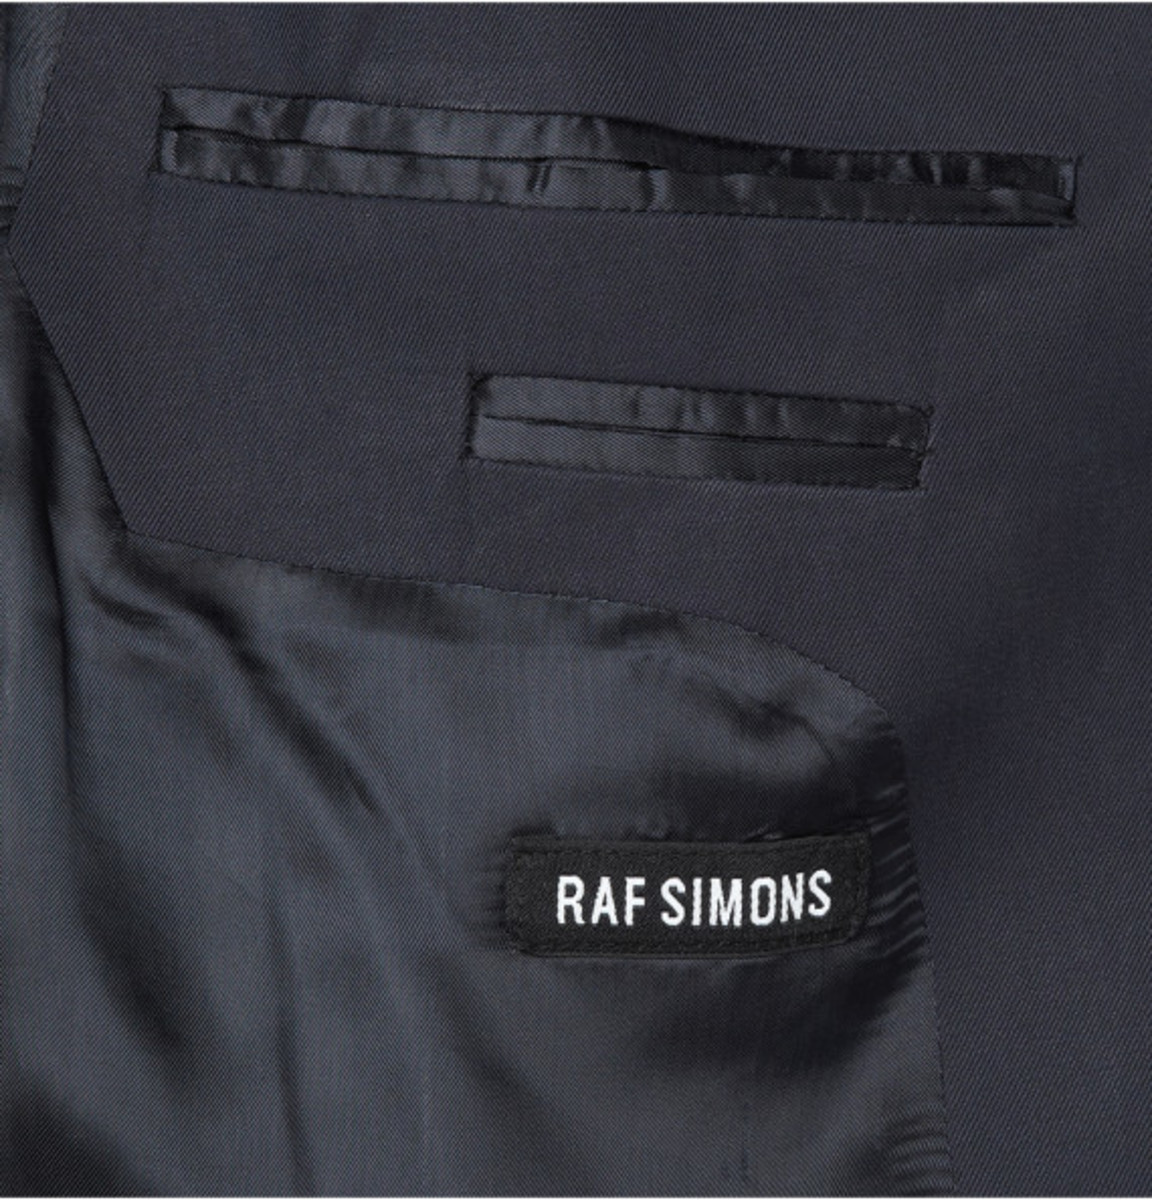 raf-simons-mr-porter-exclusive-slim-fit-cotton-twill-blazer-05